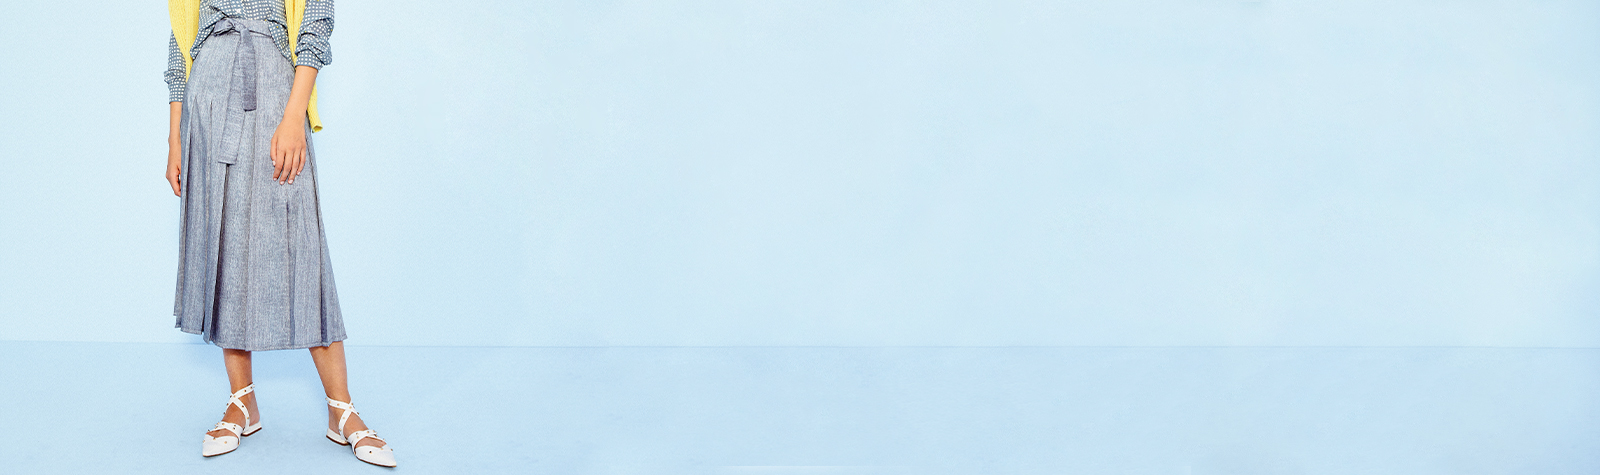 Marella - Skirts Fall Winter 2019